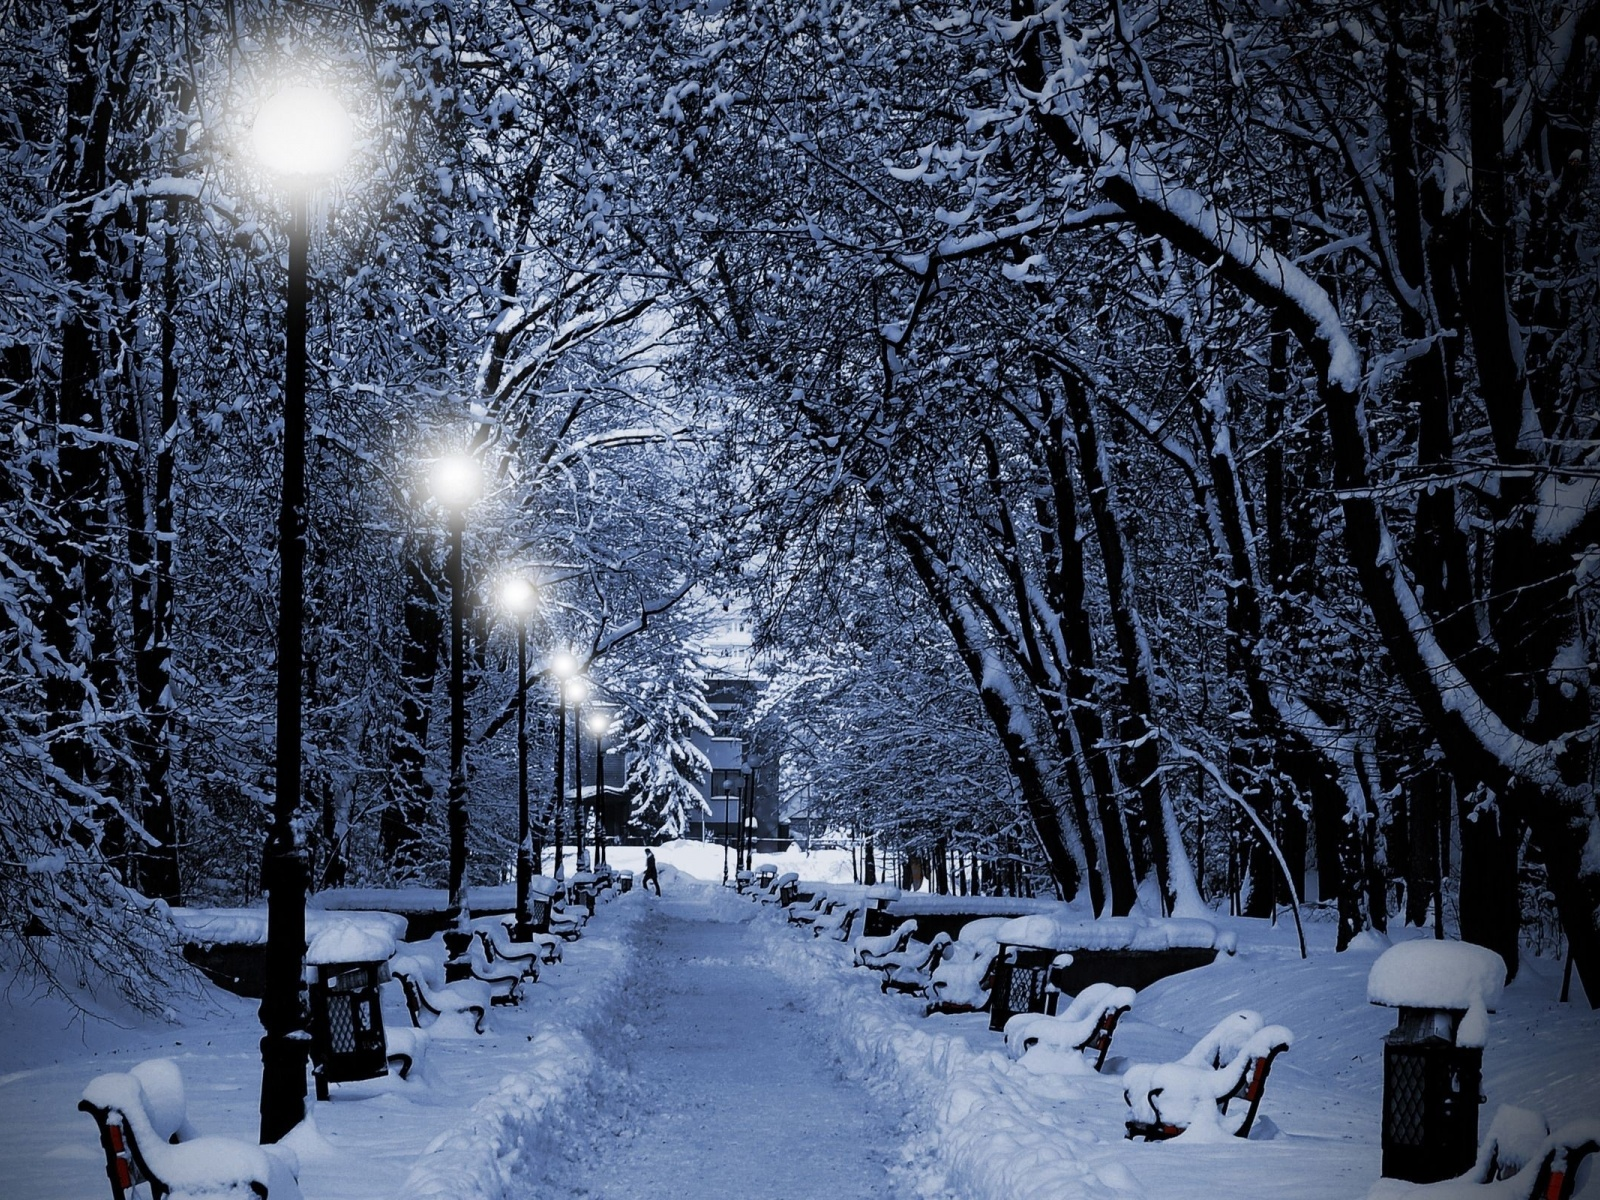 1600x1200 Winter Trees Lamps Way desktop PC and Mac wallpaper 1600x1200